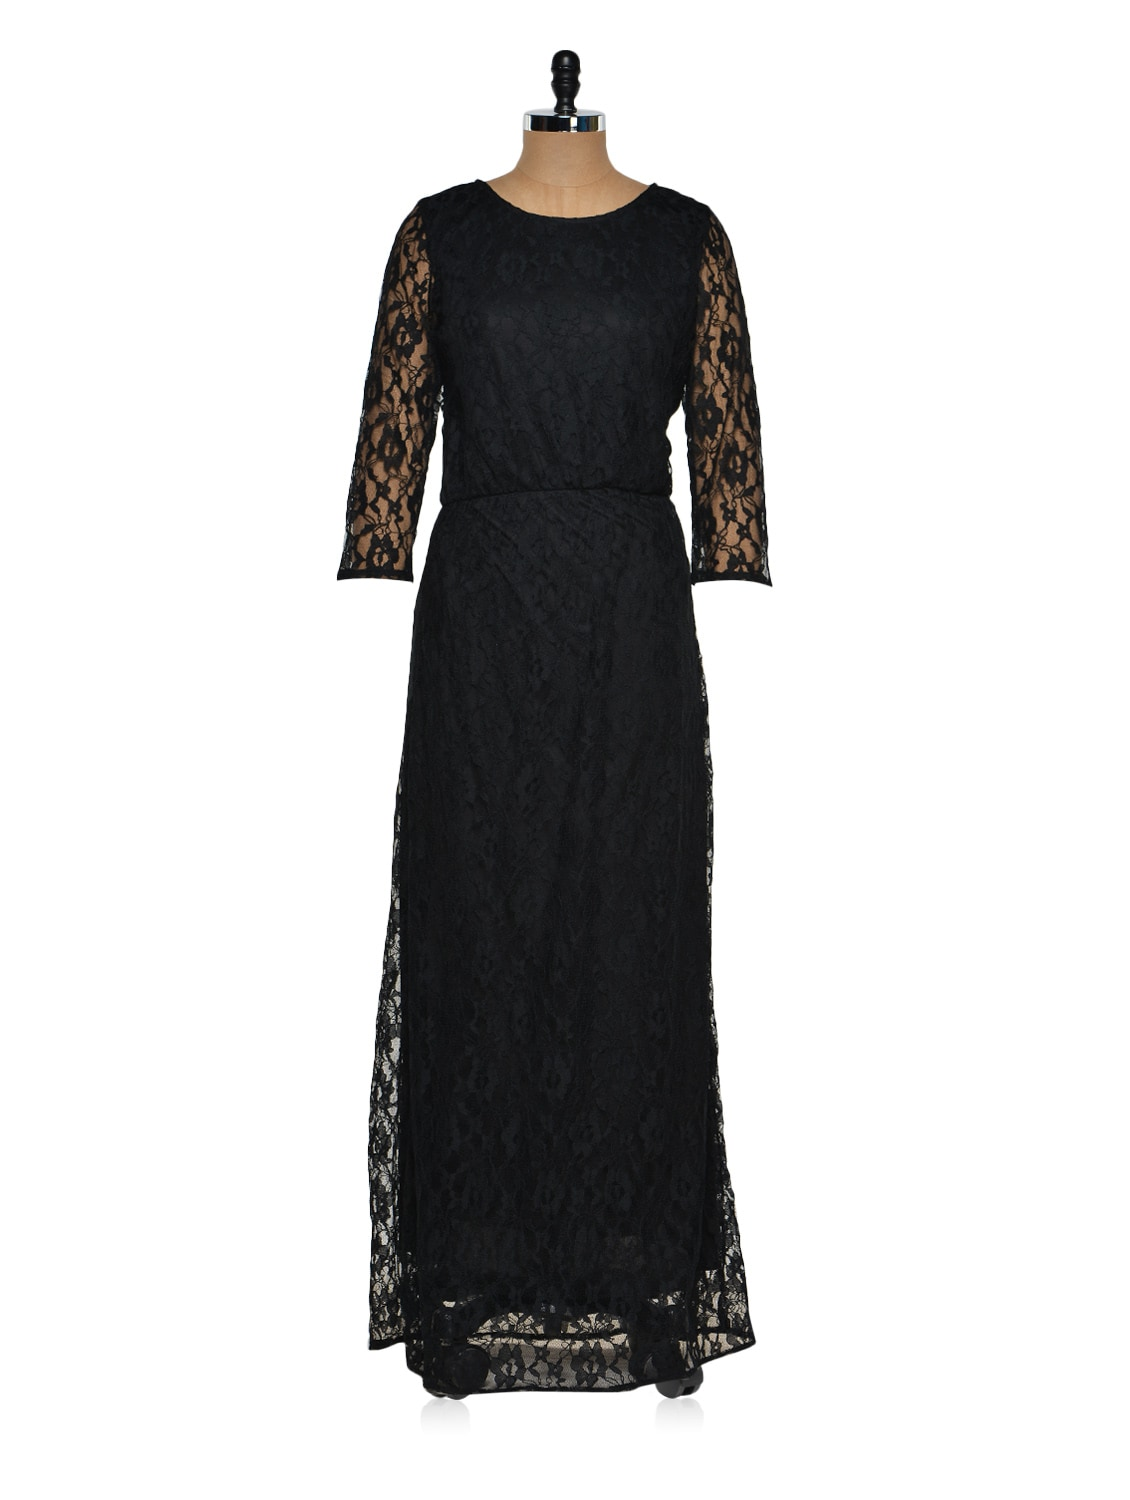 Black Lace Maxi Dress - Purys